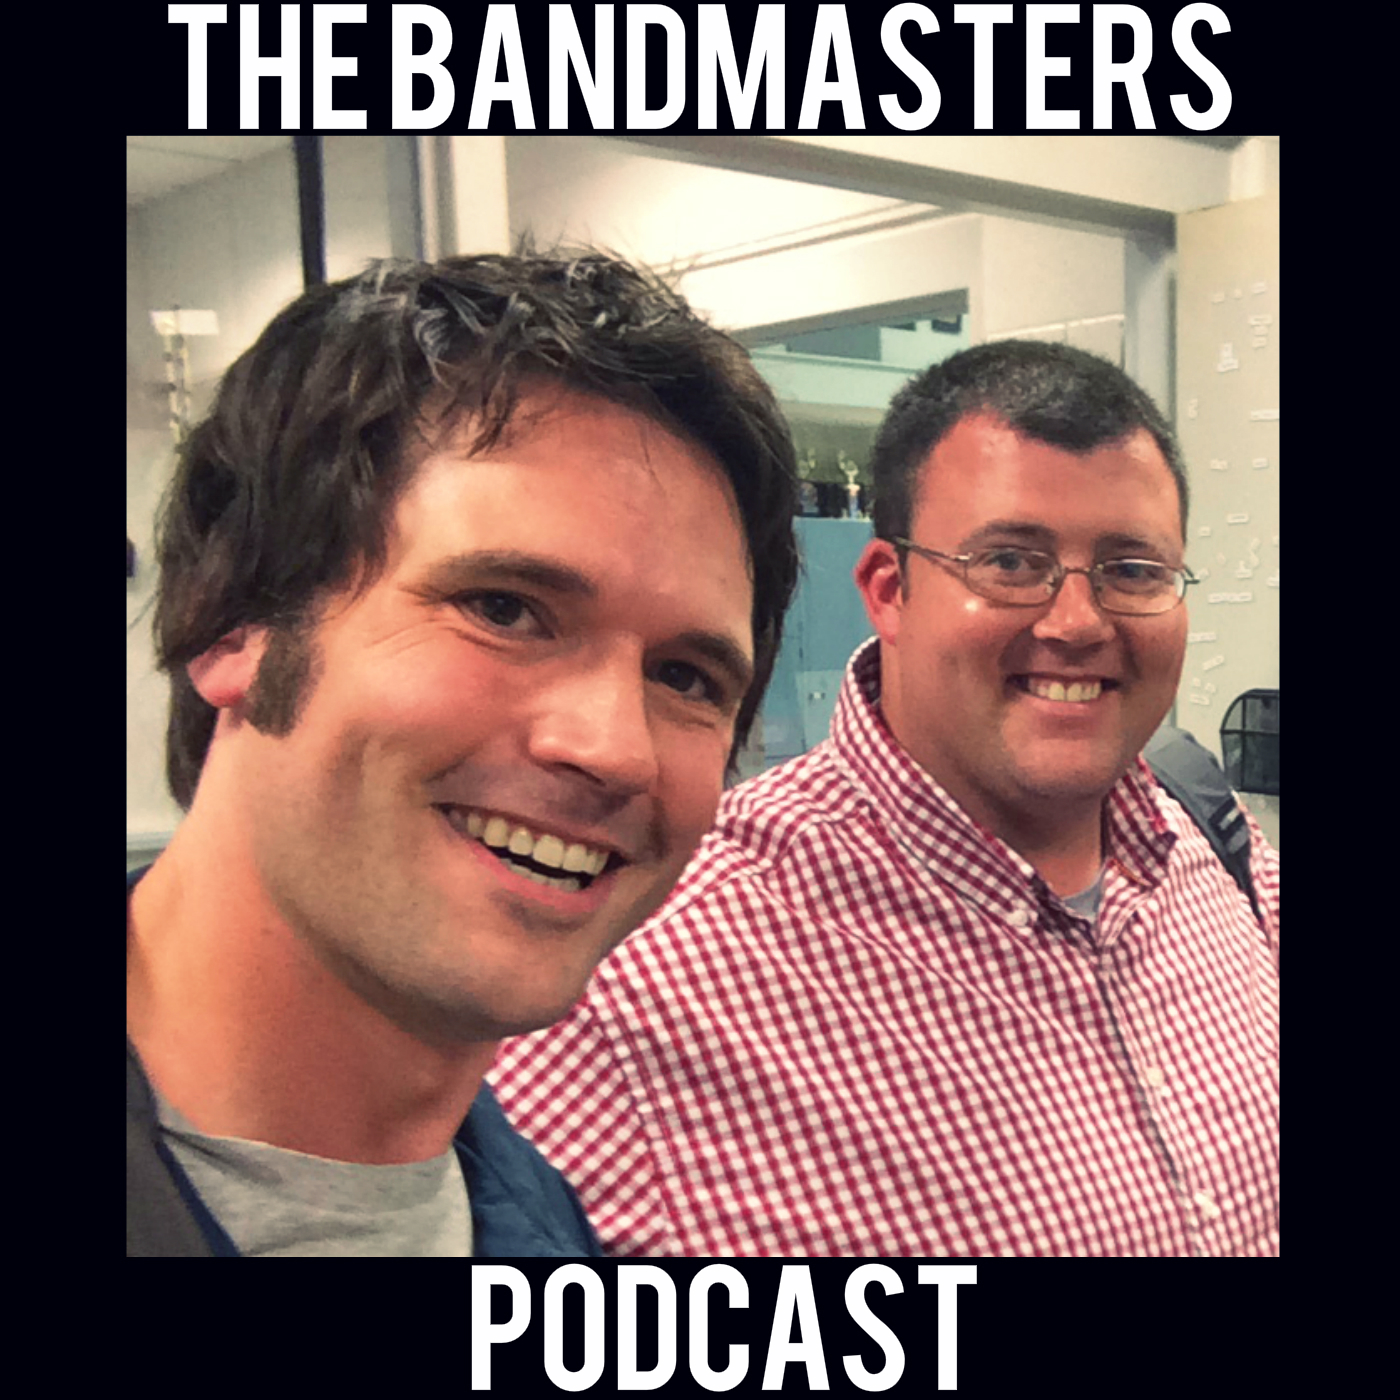 Podcast - The Bandmasters Podcast